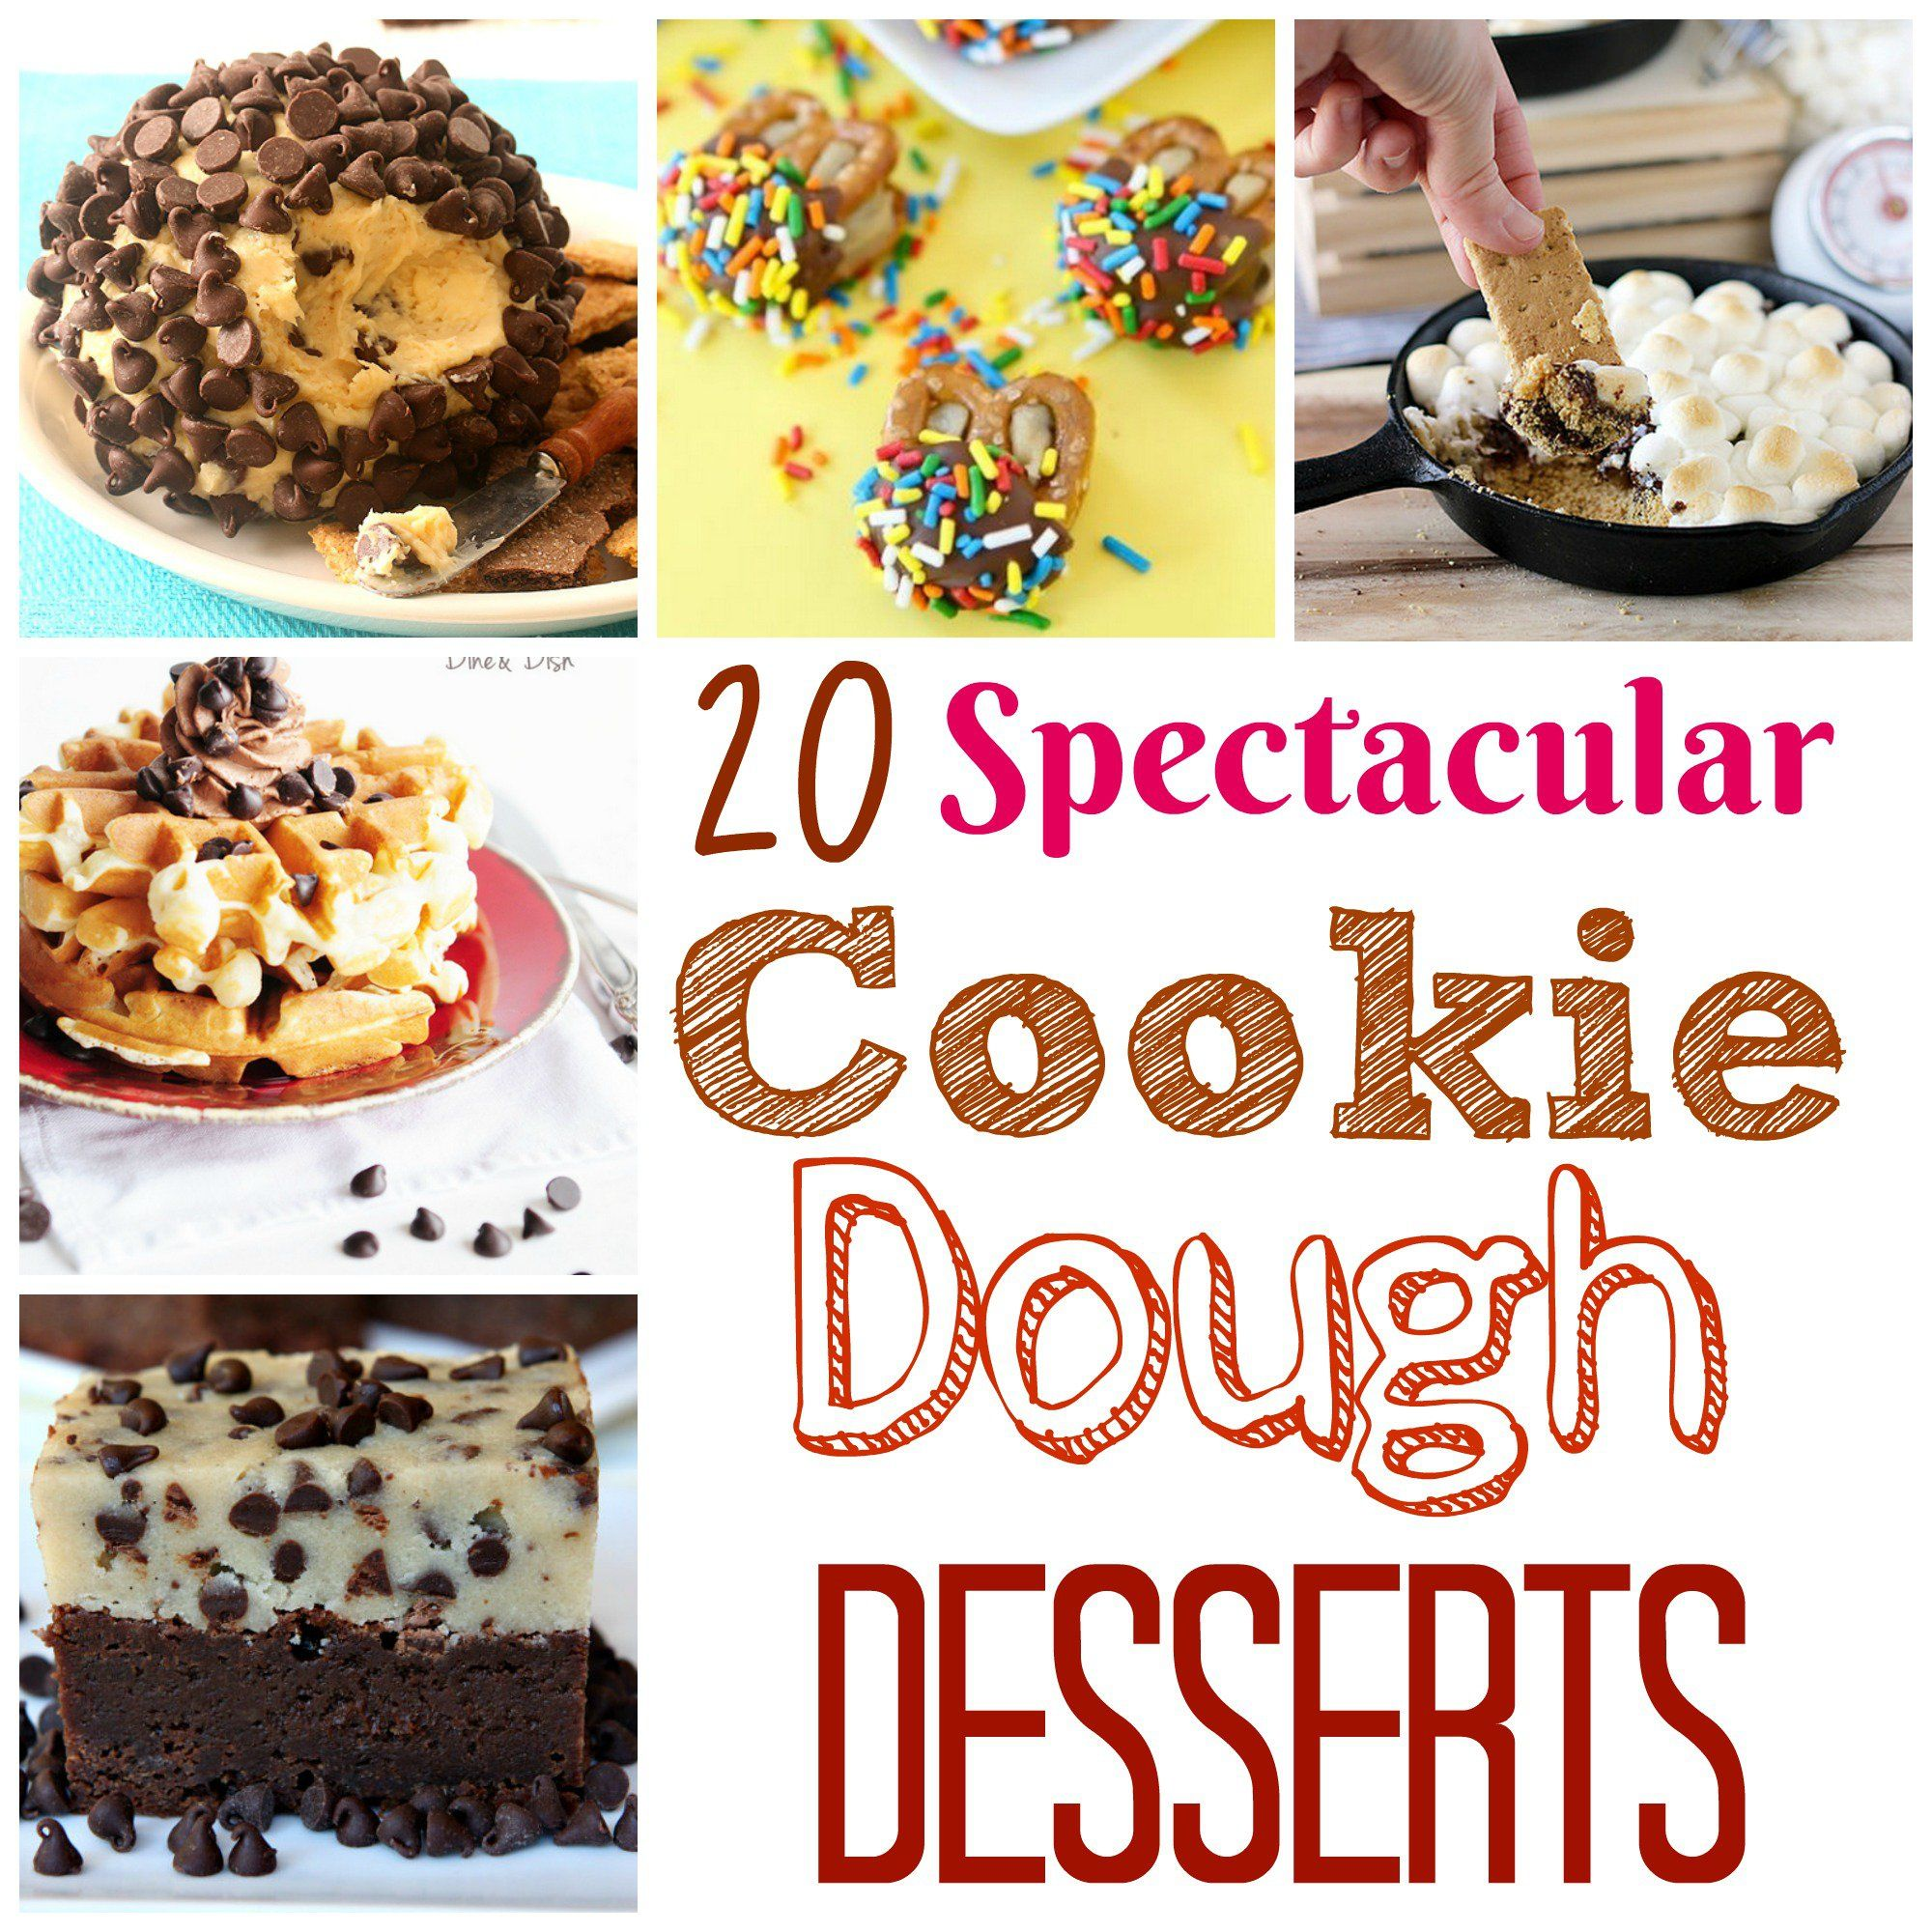 20-spectacular-cookie-dough-desserts-you-need-to-make